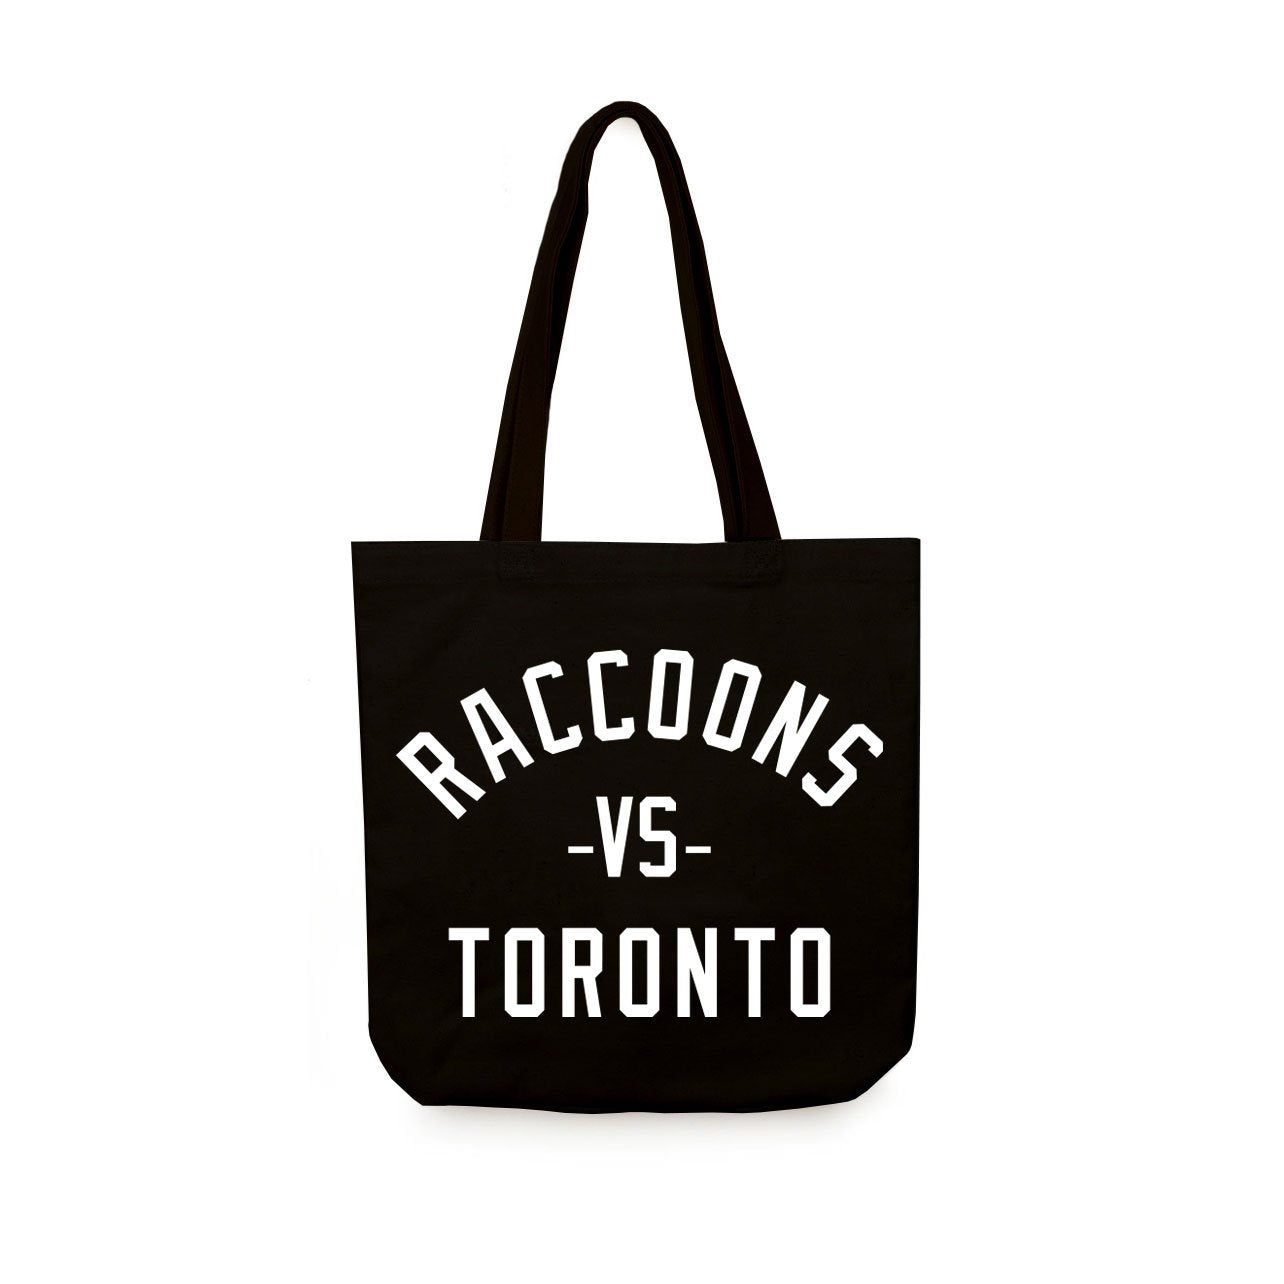 Raccoons Vs. Toronto Tote Bag - Main and Local